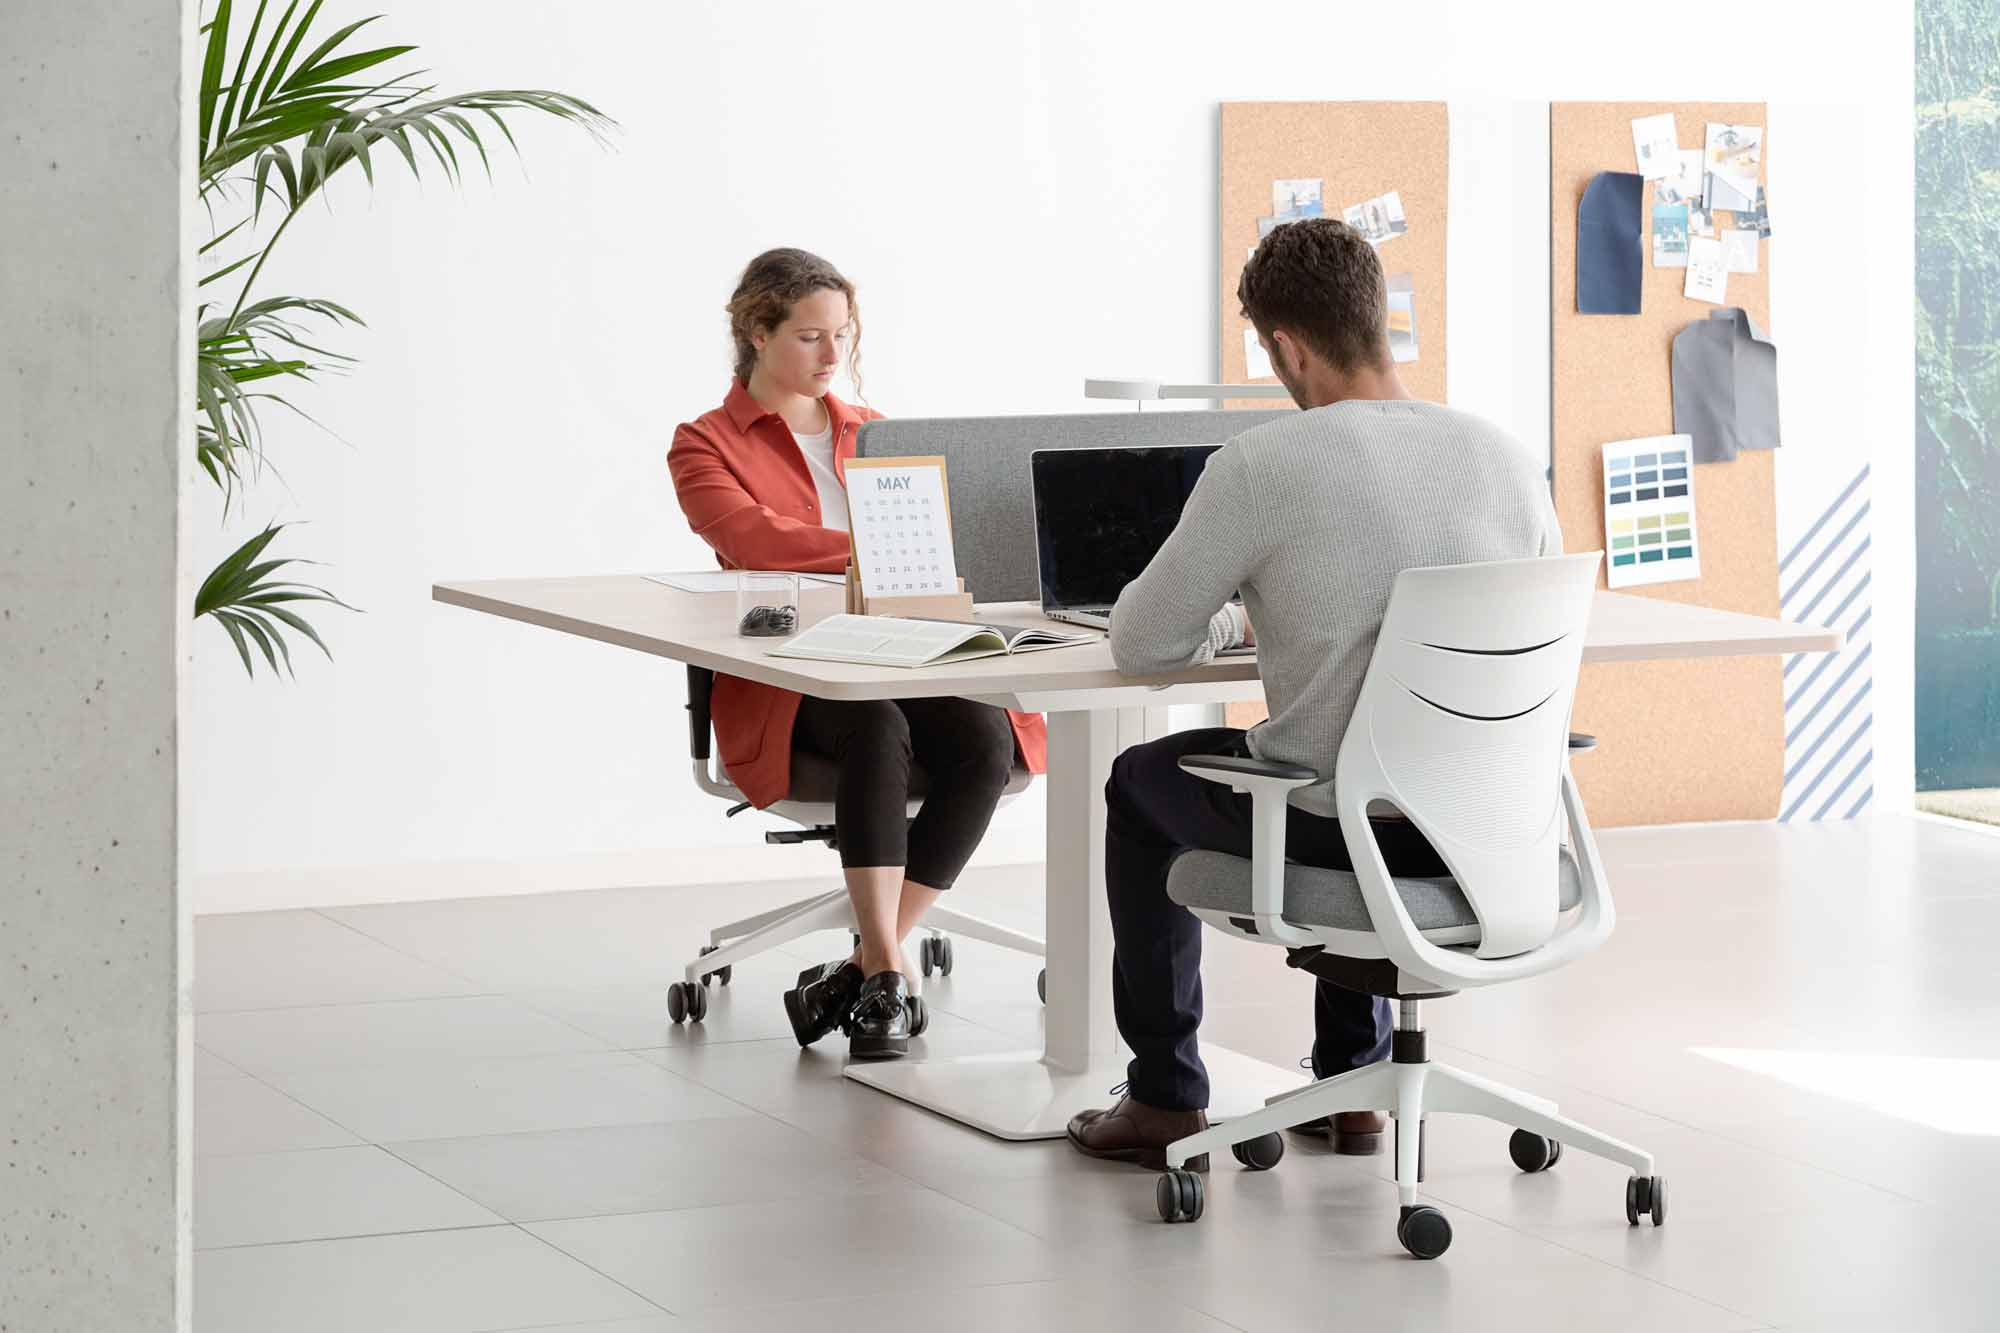 desk power operative executive tables efit chair white comfort technology mobility design height adjustable workstation workplace dual communication excellence masof actiu